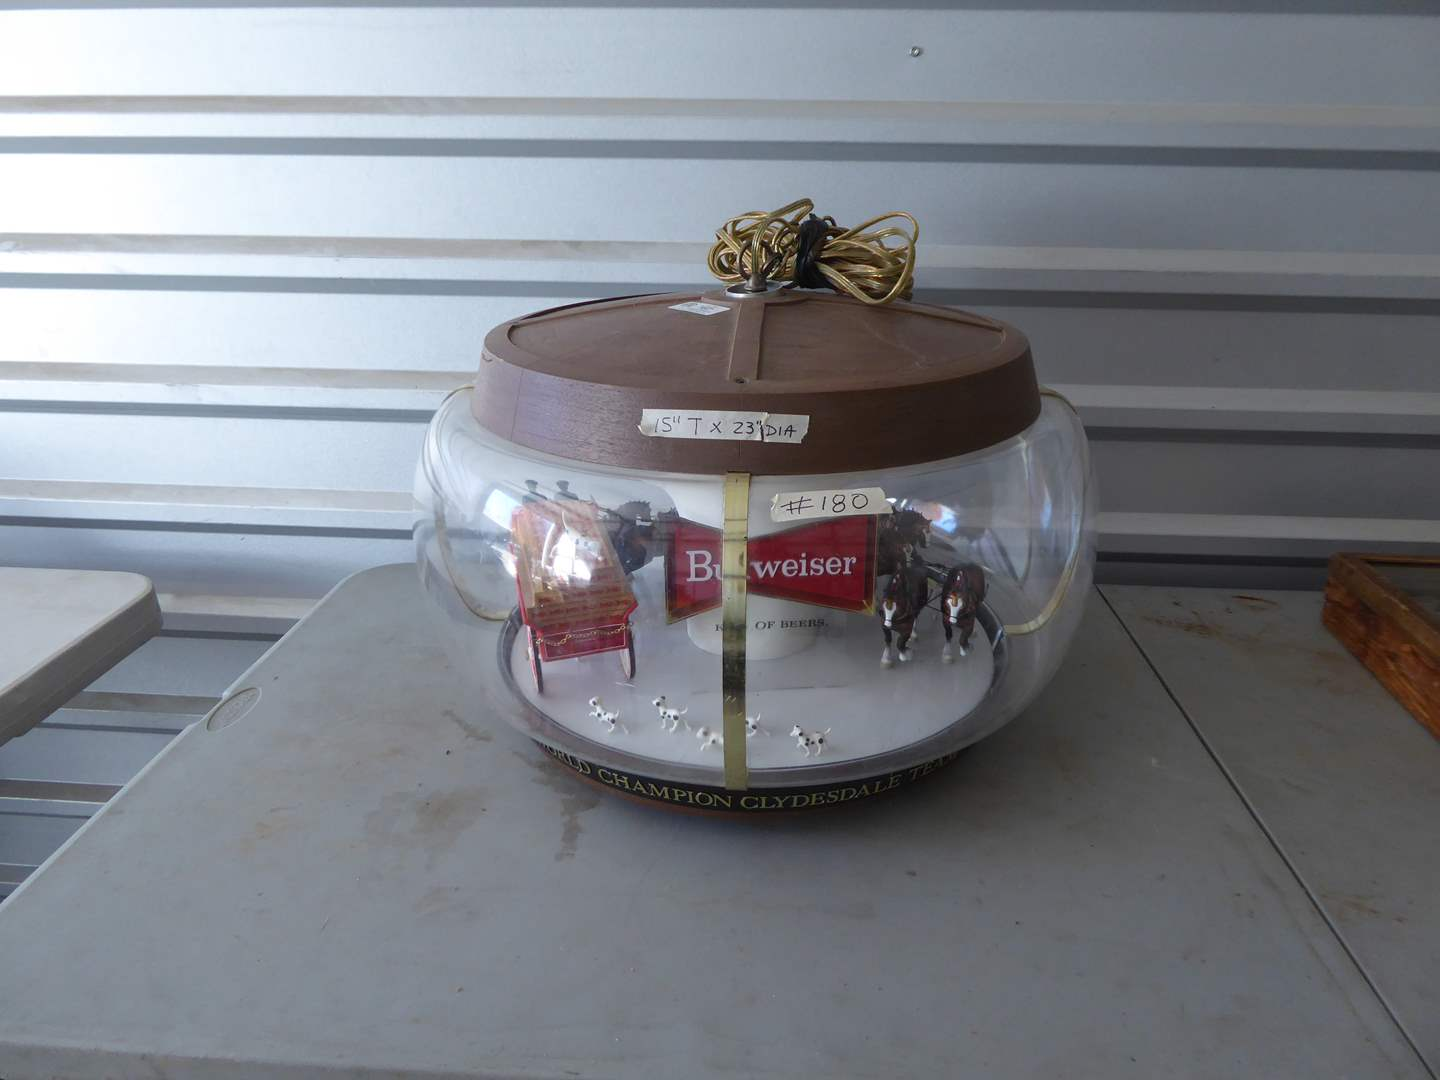 Lot # 180 - Vintage Budweiser Hanging Clydesdale Rotating Carousel Light   (main image)